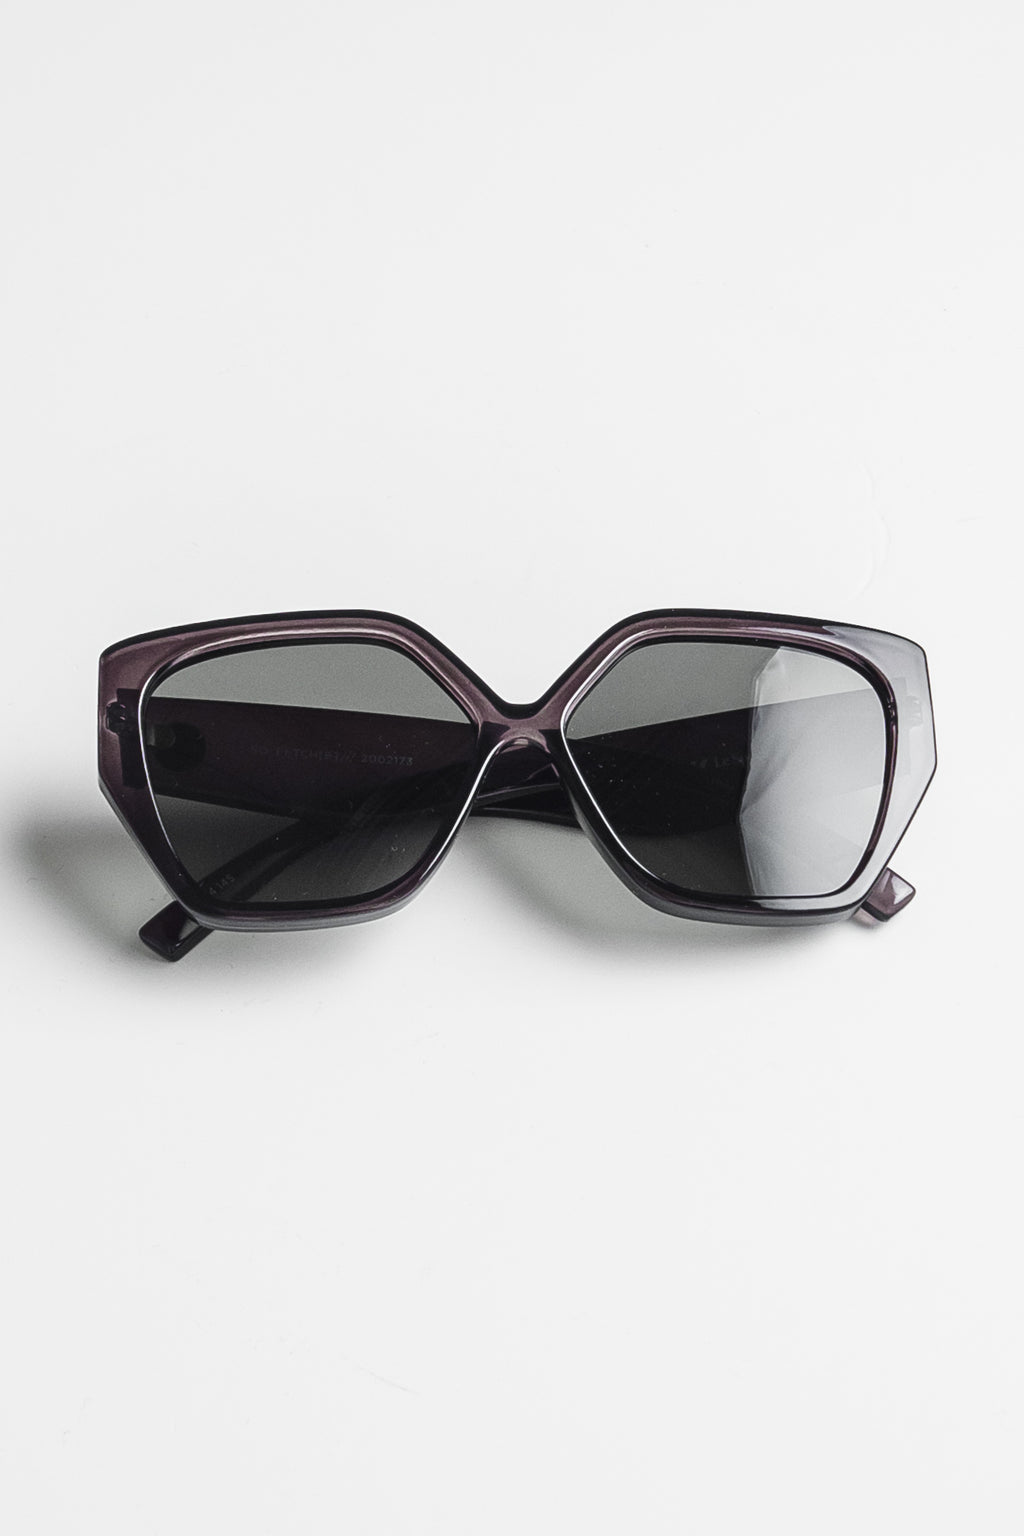 Le Specs So Fetch naisten aurinkolasit - Midnight grey